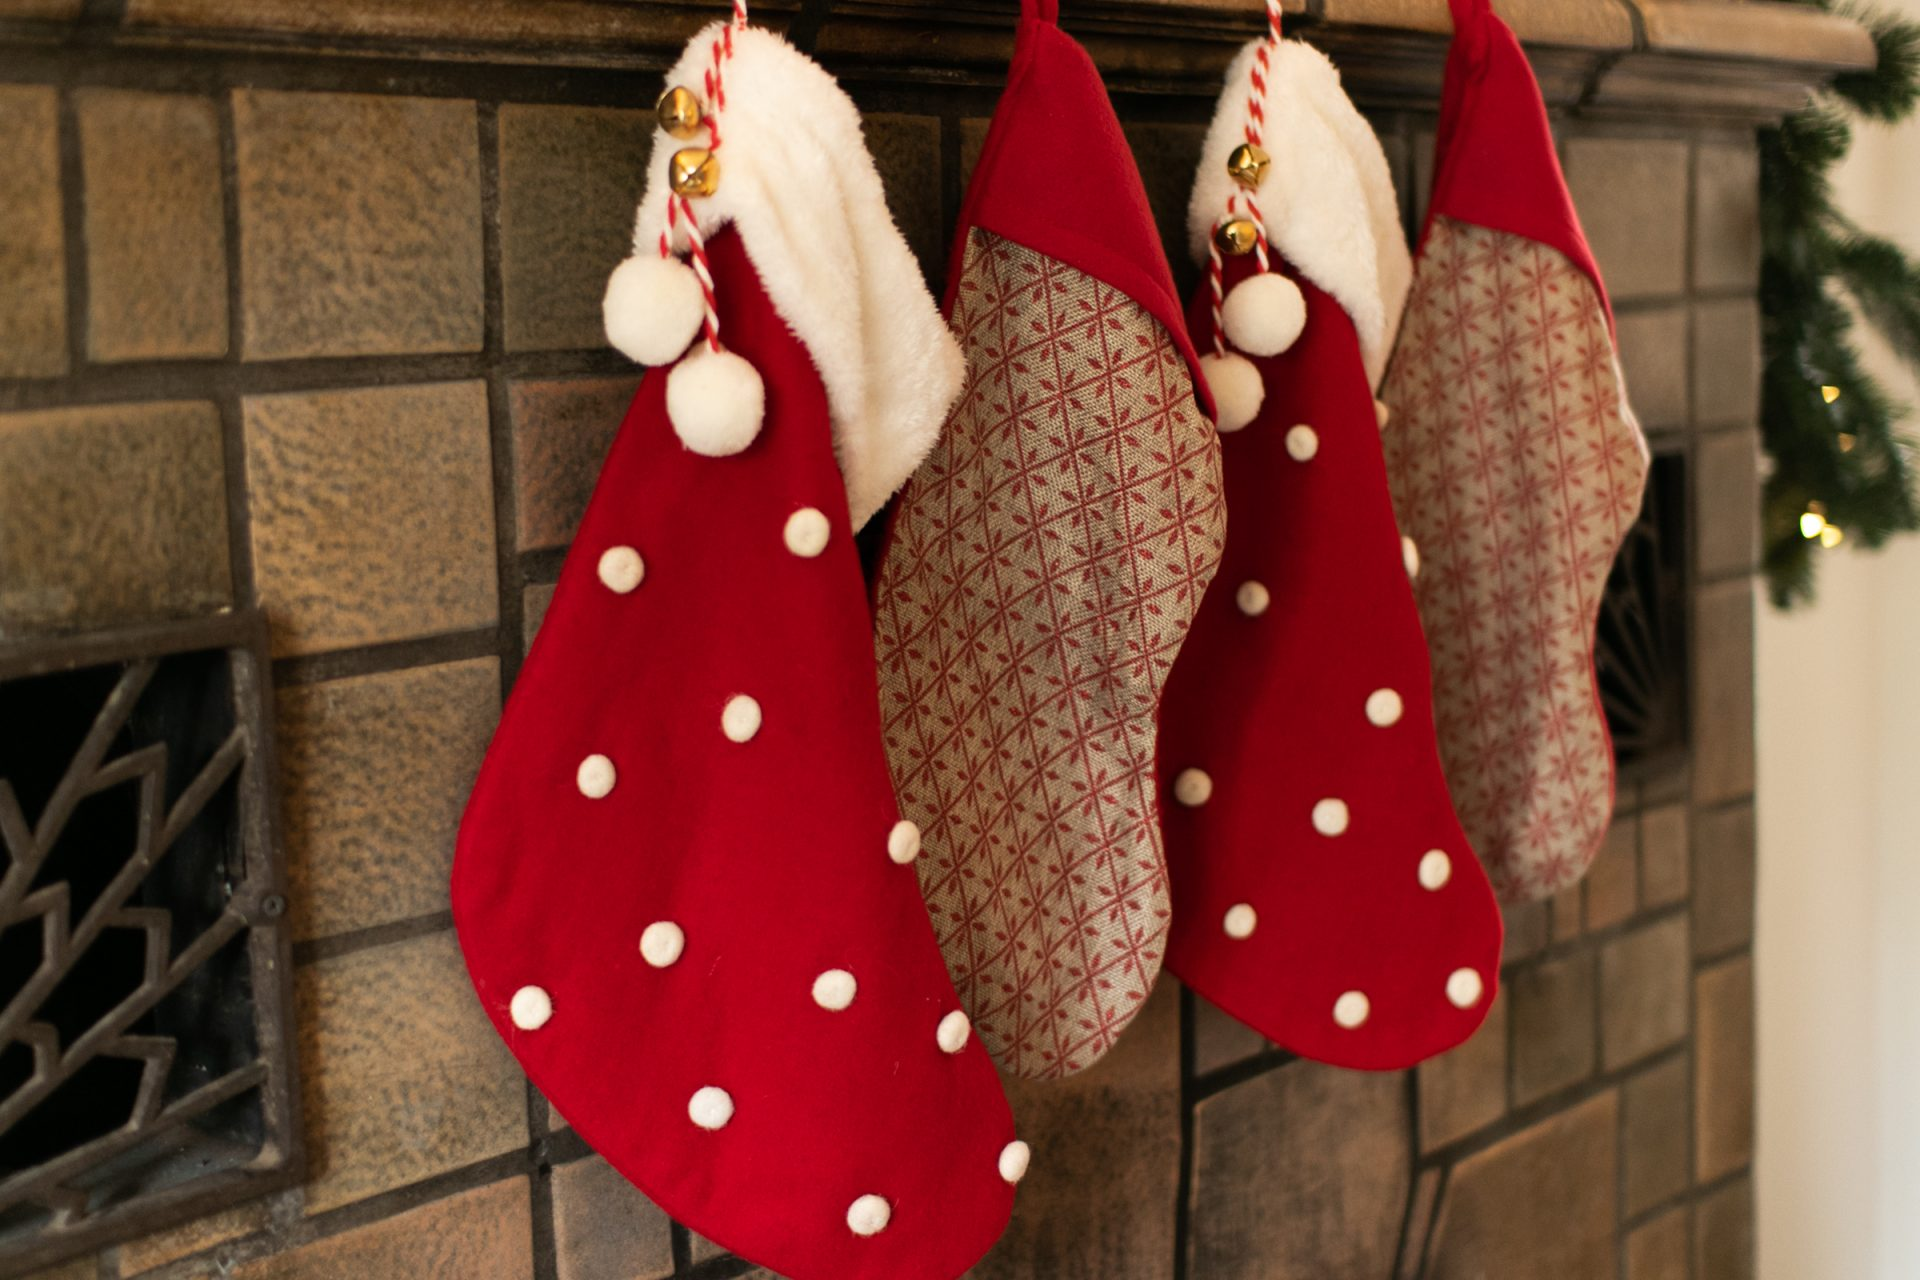 Four Stockings Hung On Mantel